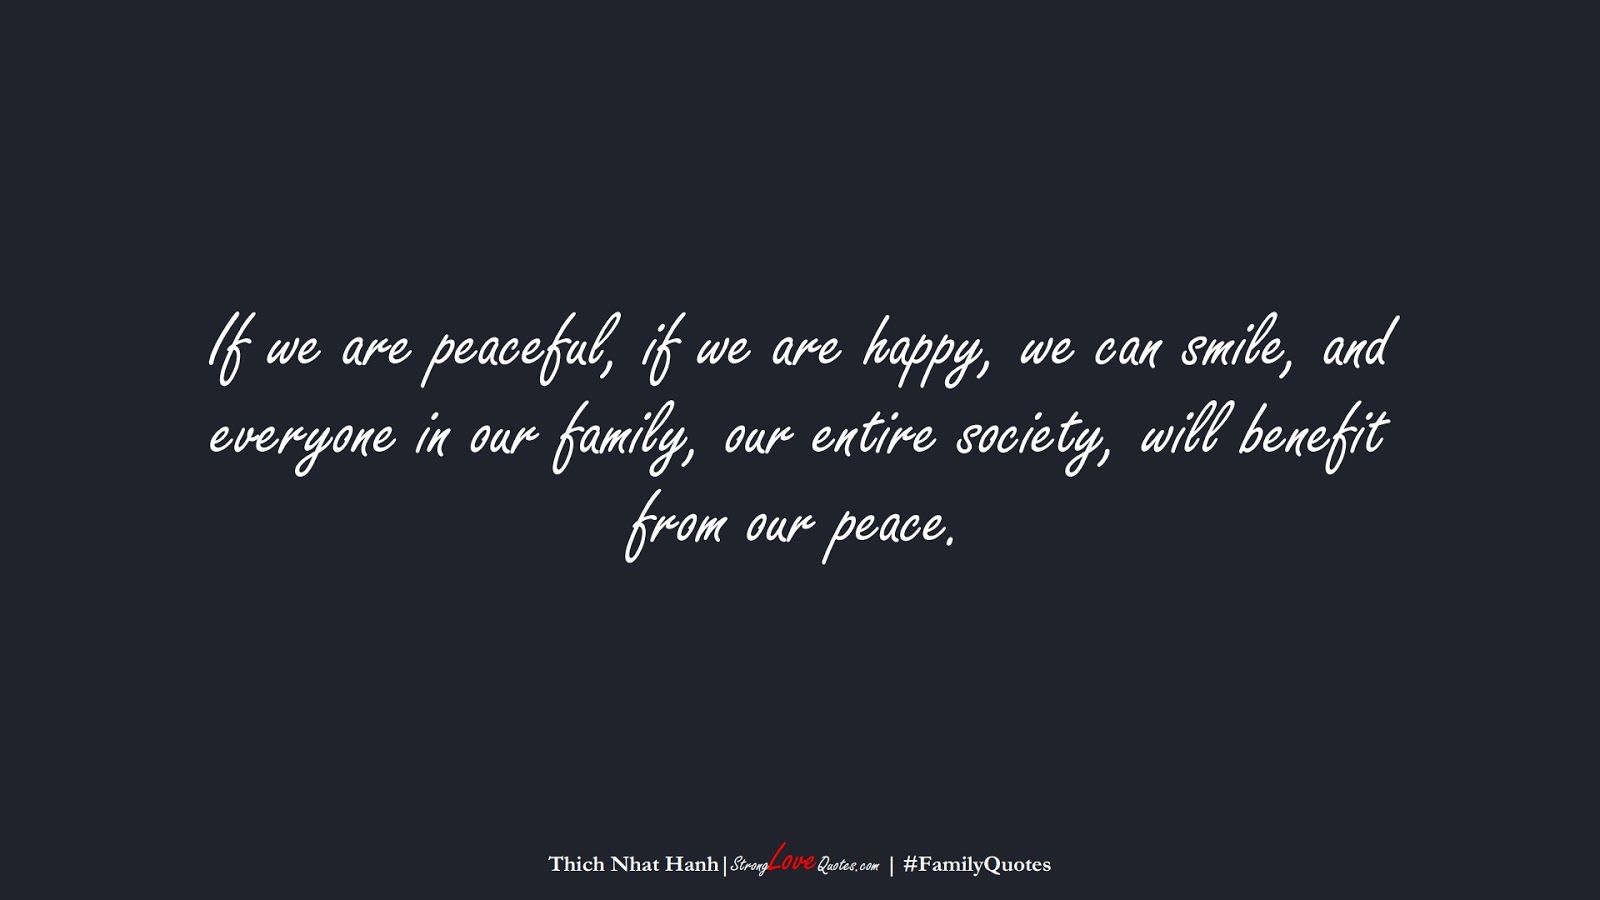 If we are peaceful, if we are happy, we can smile, and everyone in our family, our entire society, will benefit from our peace. (Thich Nhat Hanh);  #FamilyQuotes